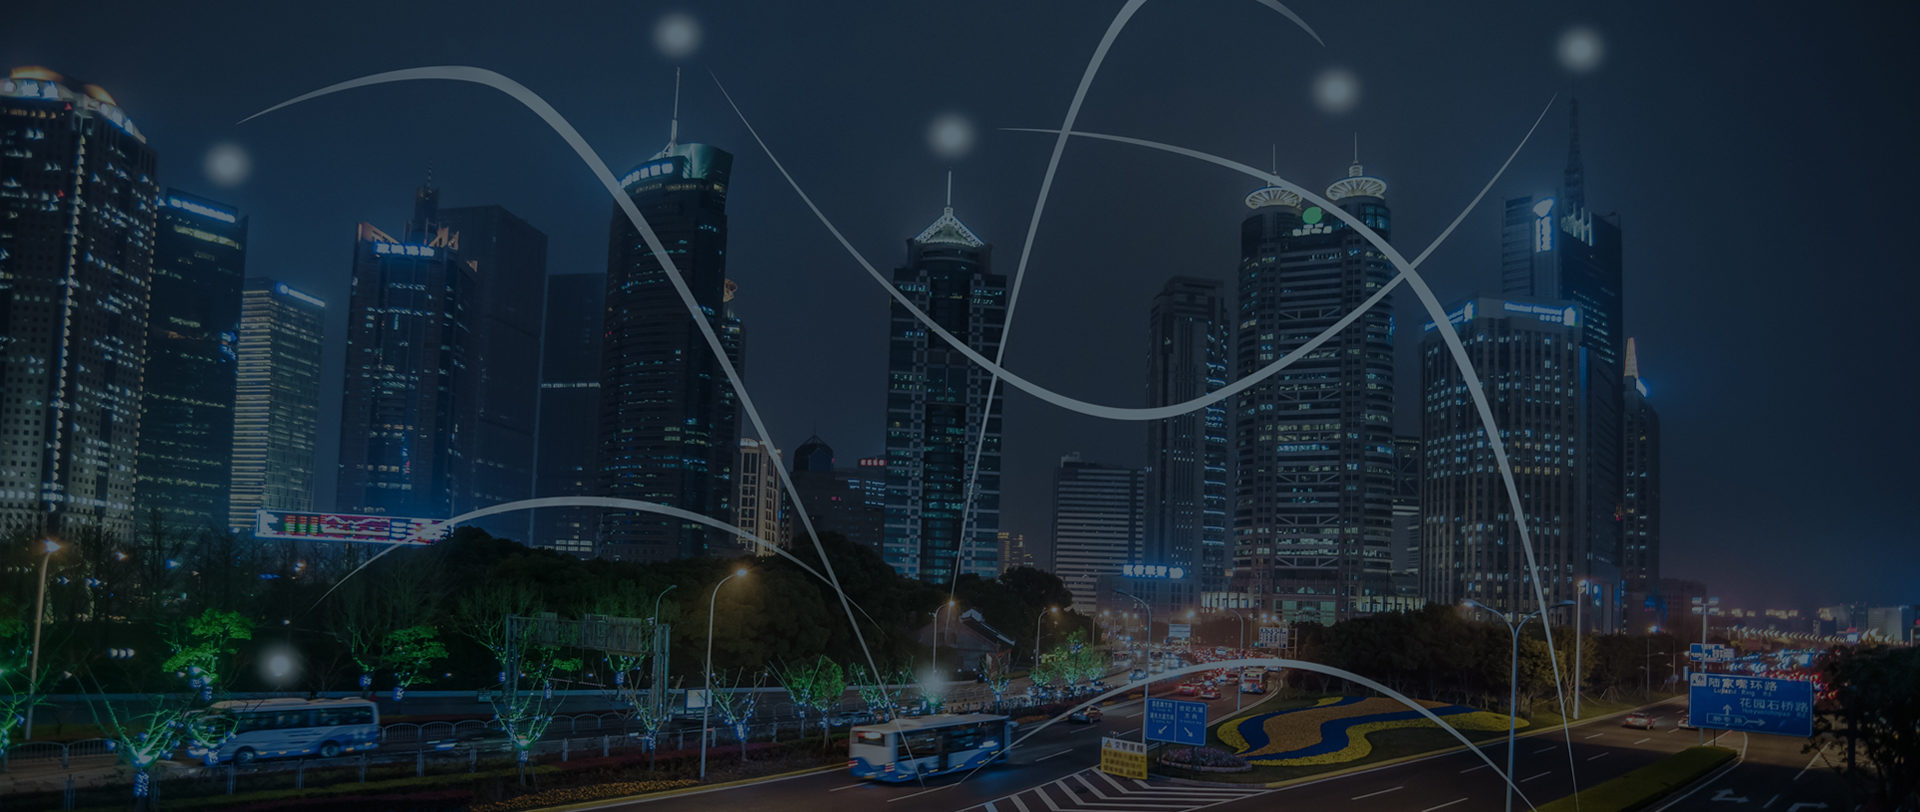 iot technology illustrated by a city connected